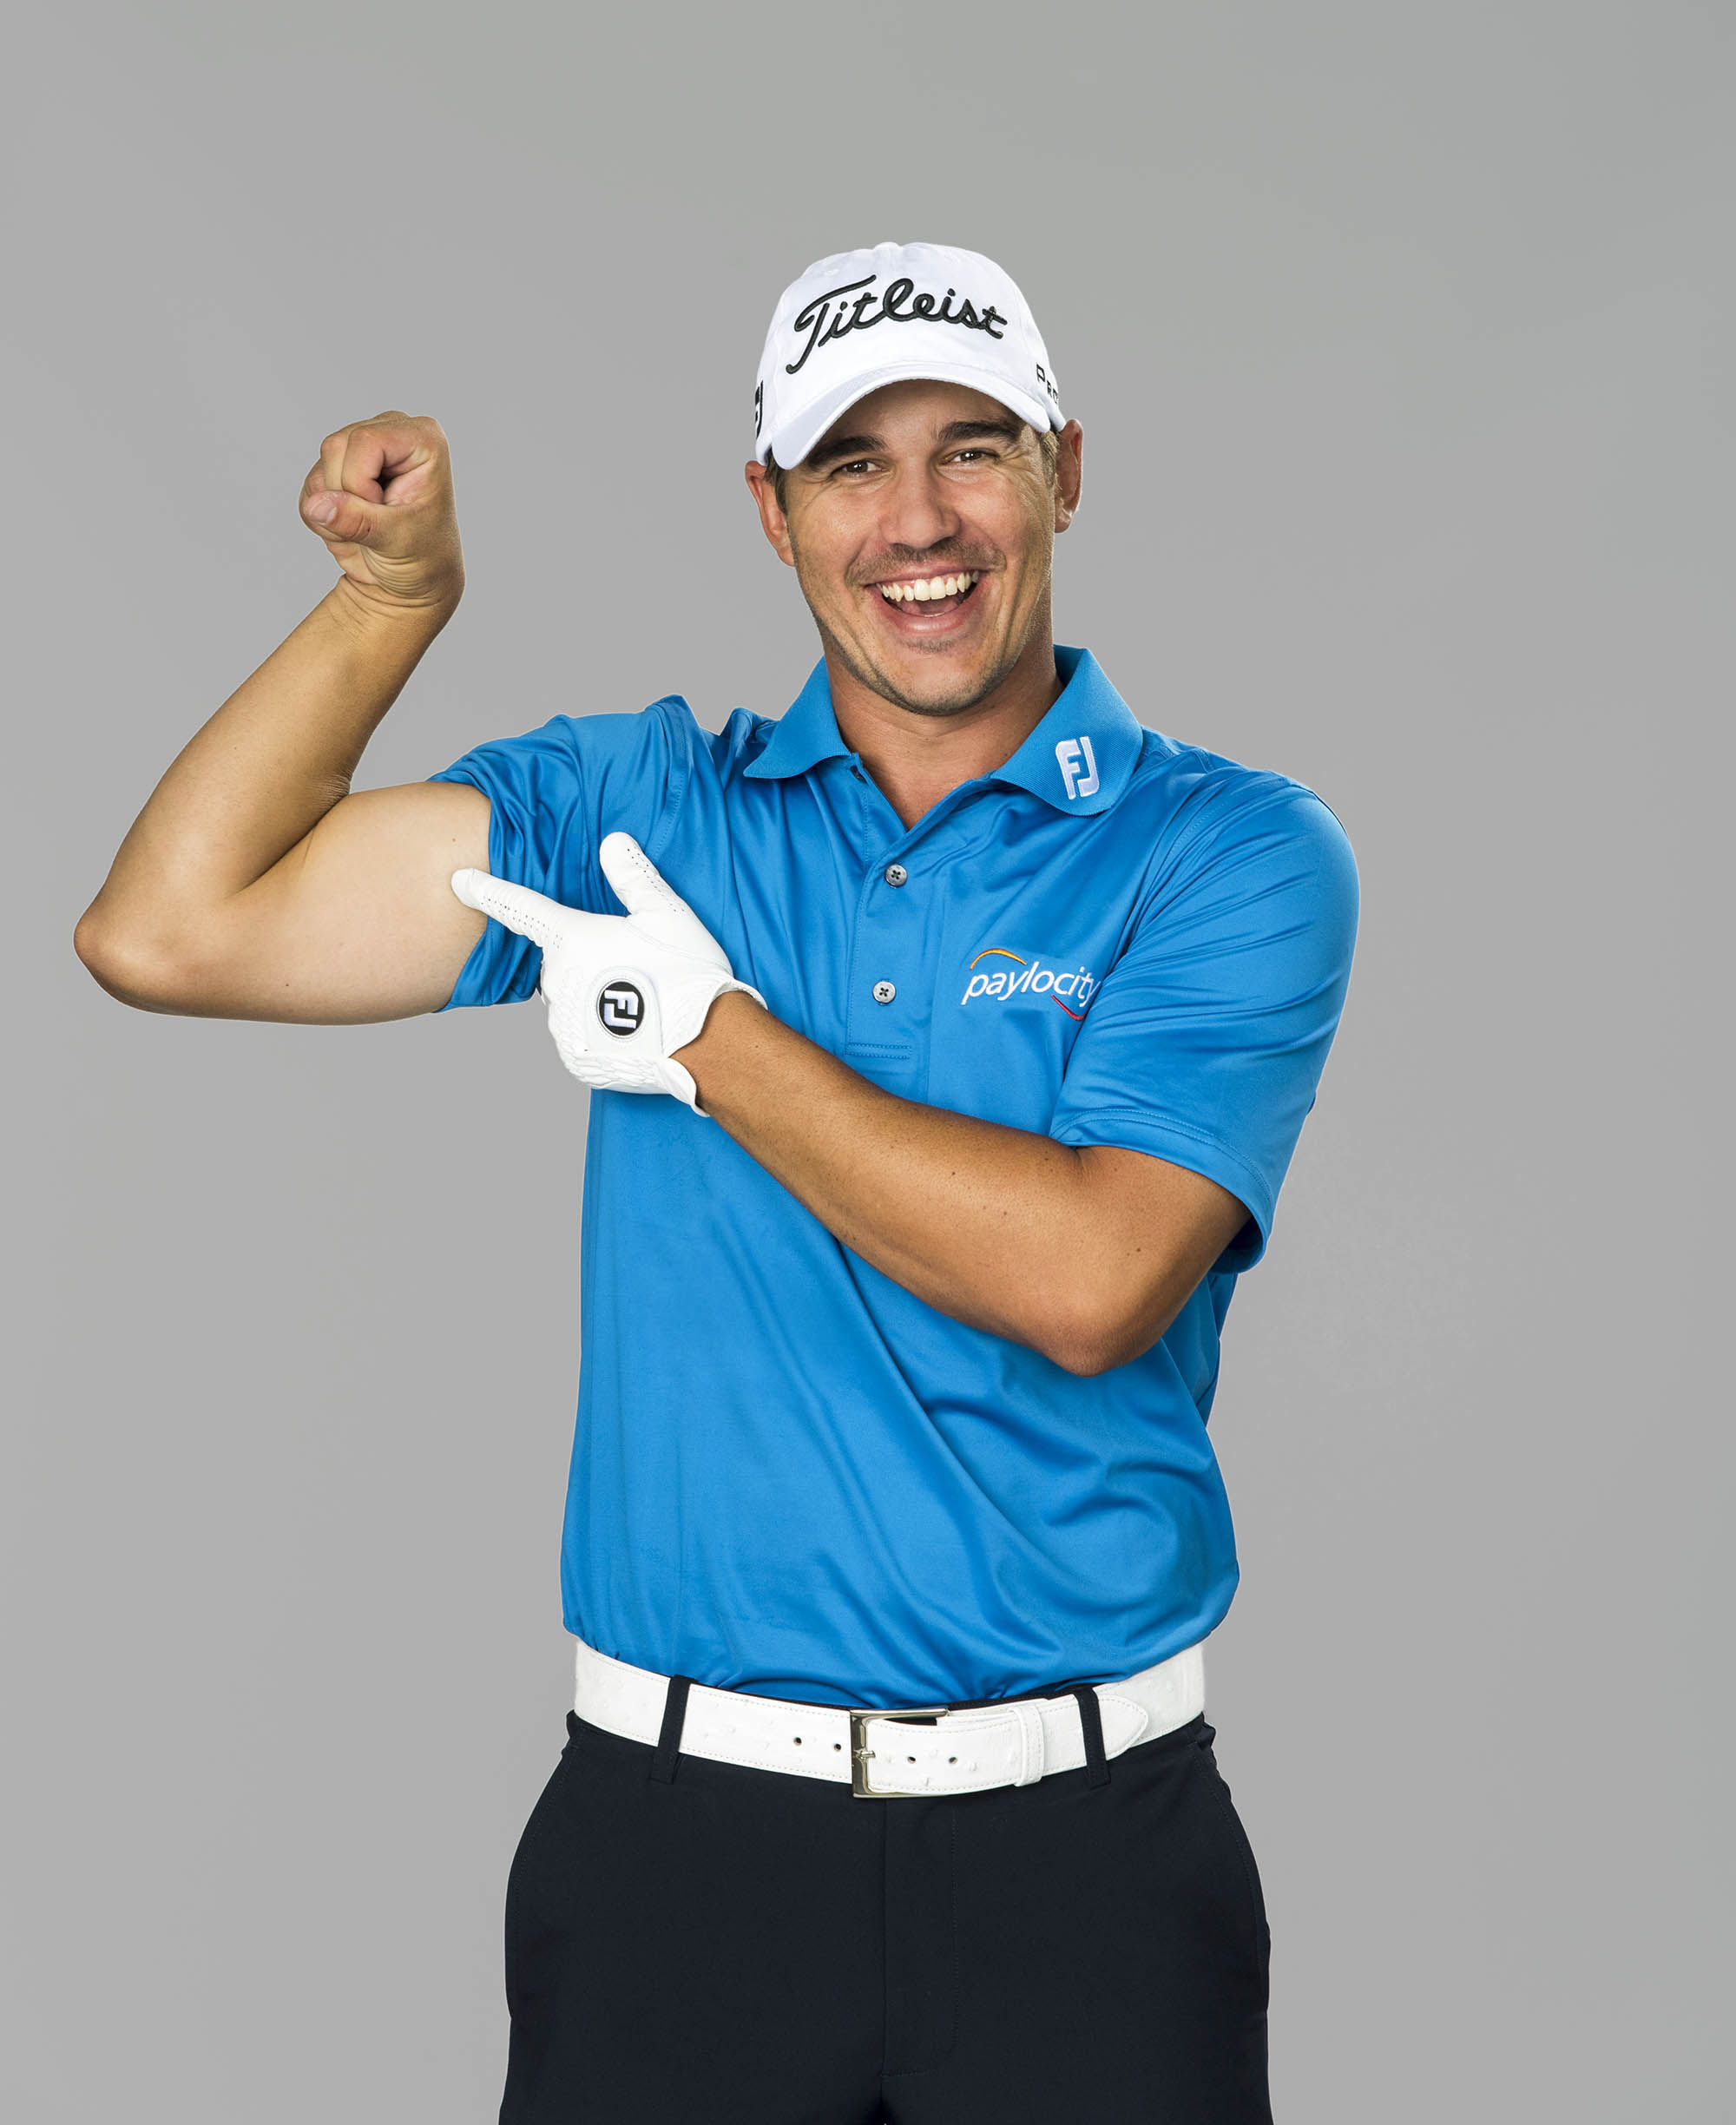 palm-beach-sports-photographer-bob-croslin-golf-brooks koepka